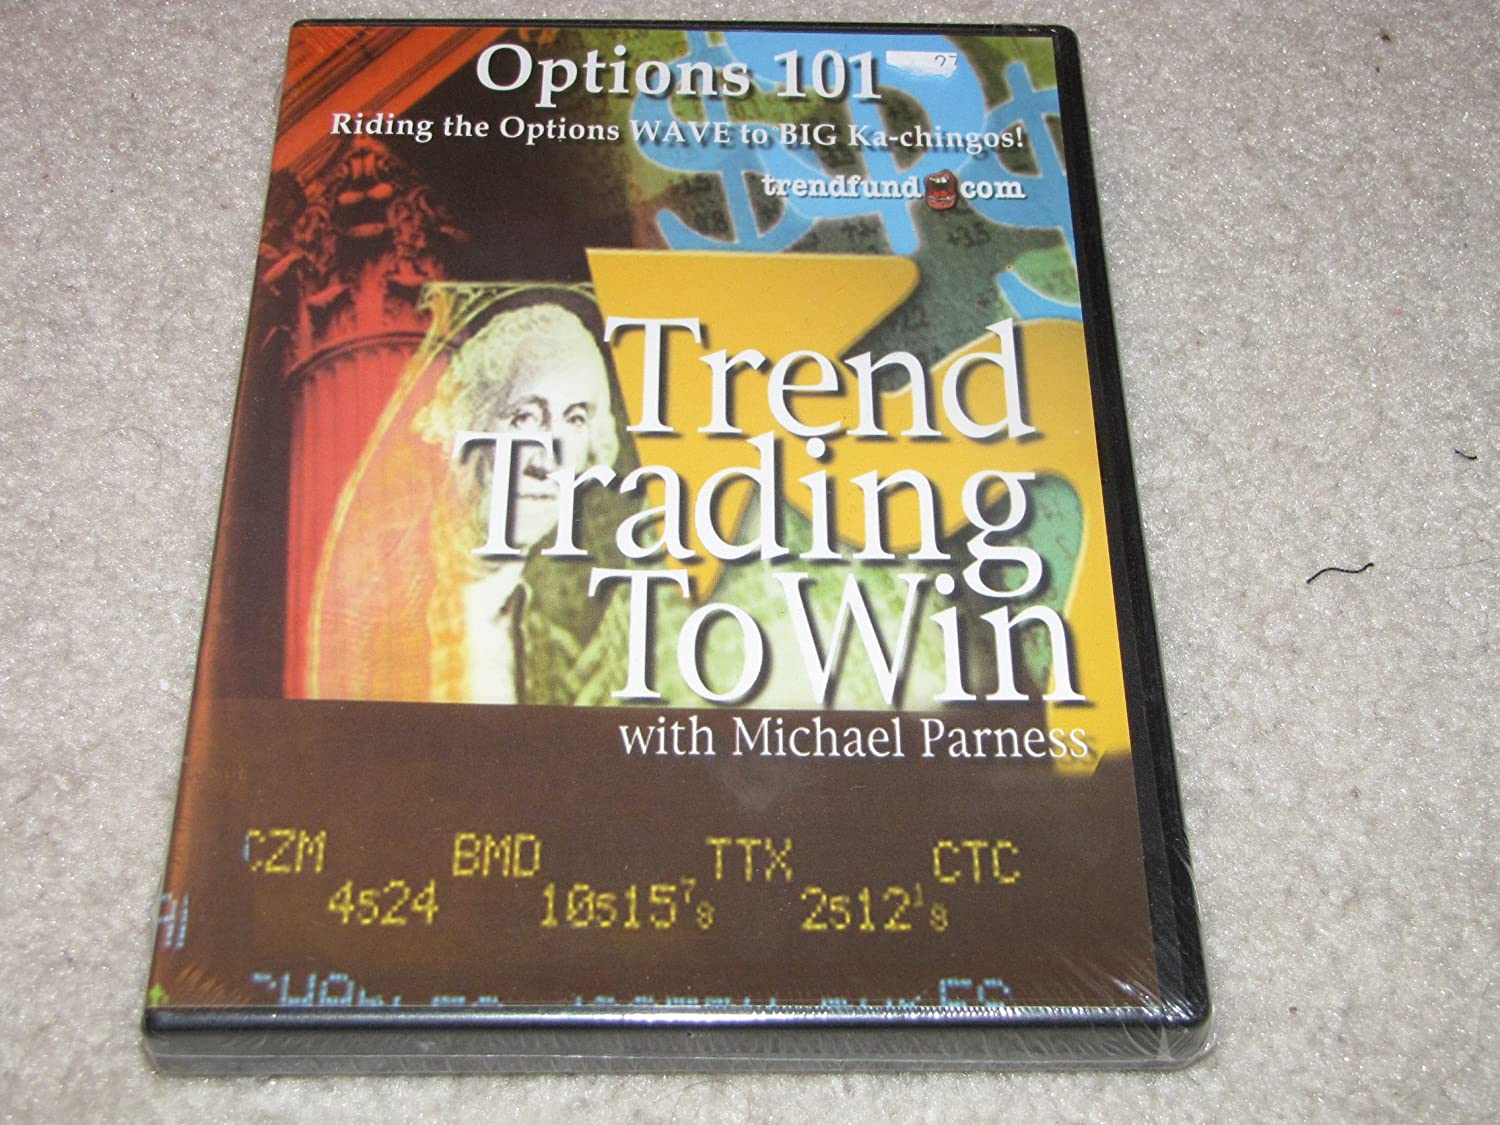 amazon com trend trading to win by michael parness options 101 amazon com trend trading to win by michael parness options 101 toys games